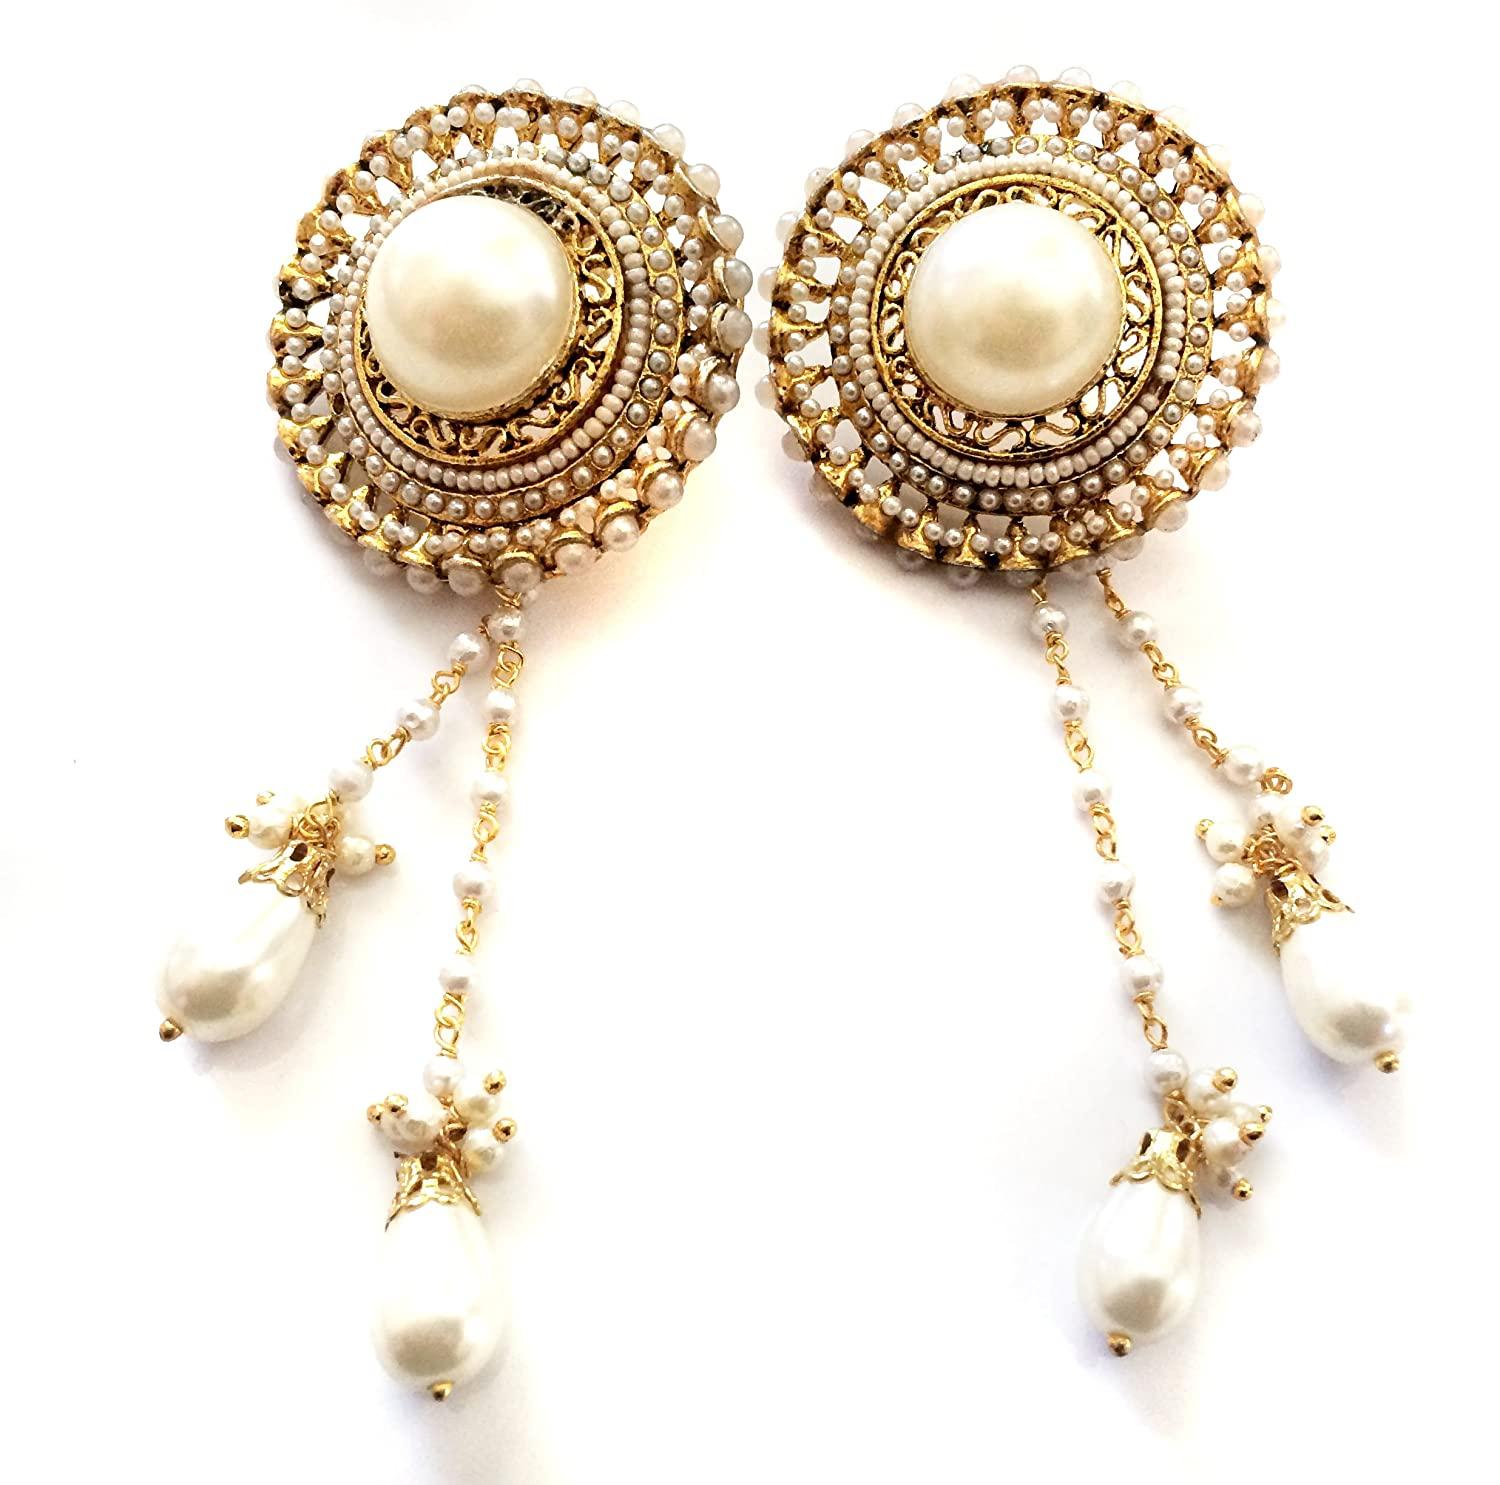 Amazon pearl kashmiri earrings gold chandelier earrings amazon pearl kashmiri earrings gold chandelier earrings bridal wedding earrings taneesi jewelry arubaitofo Gallery